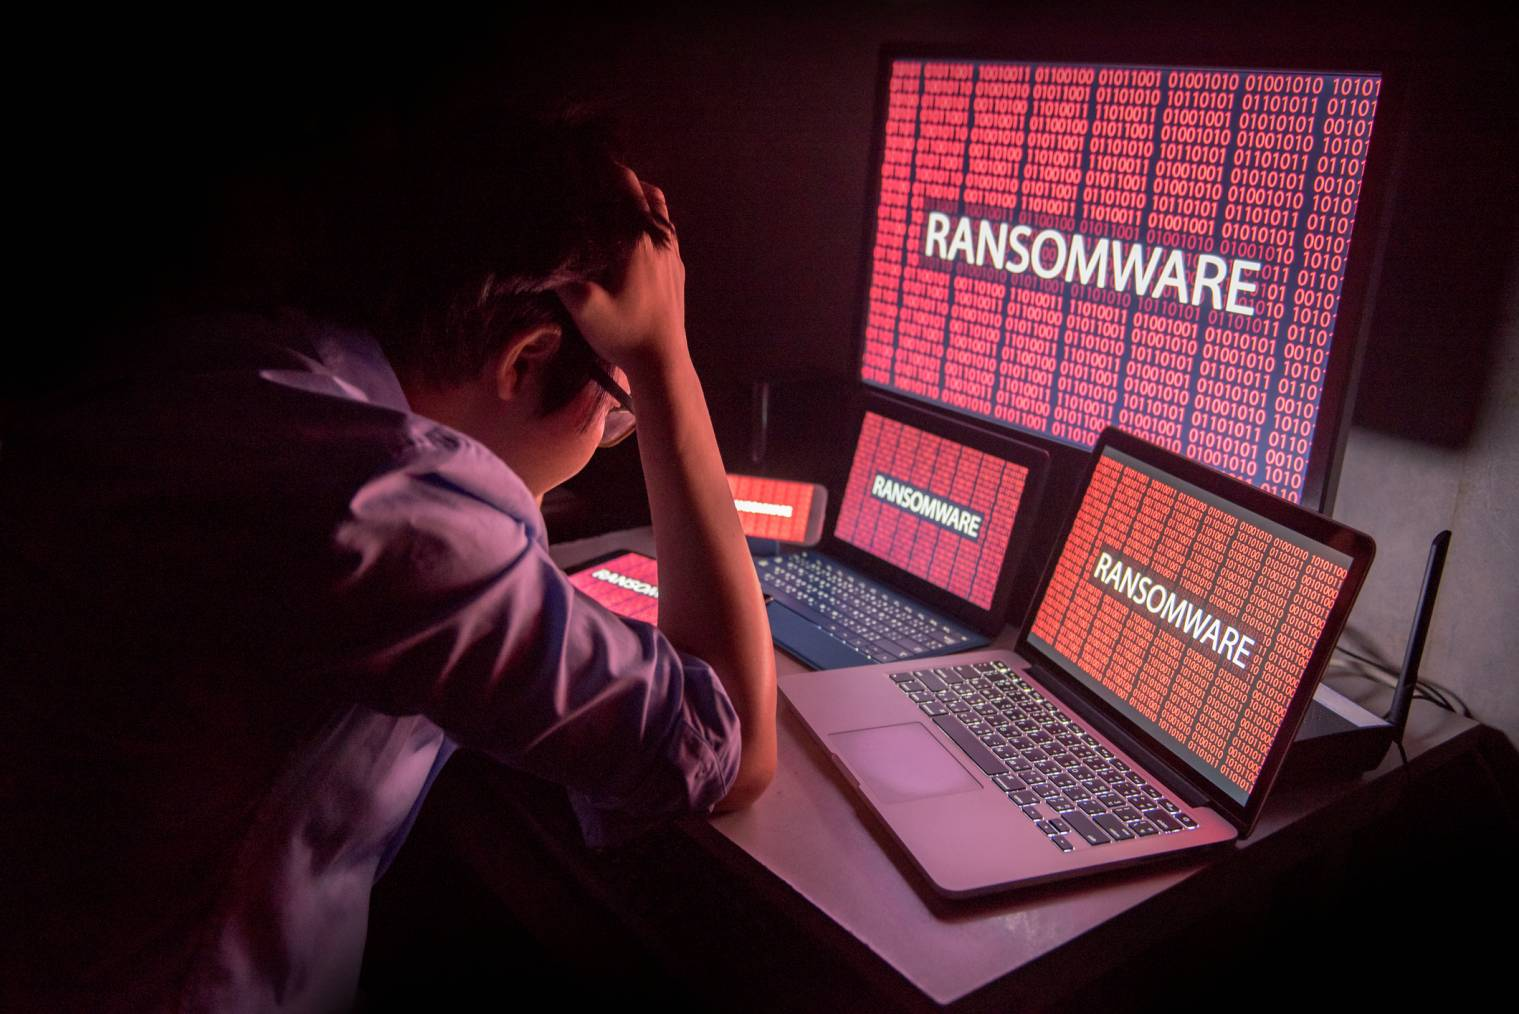 piratage informatique ransomware